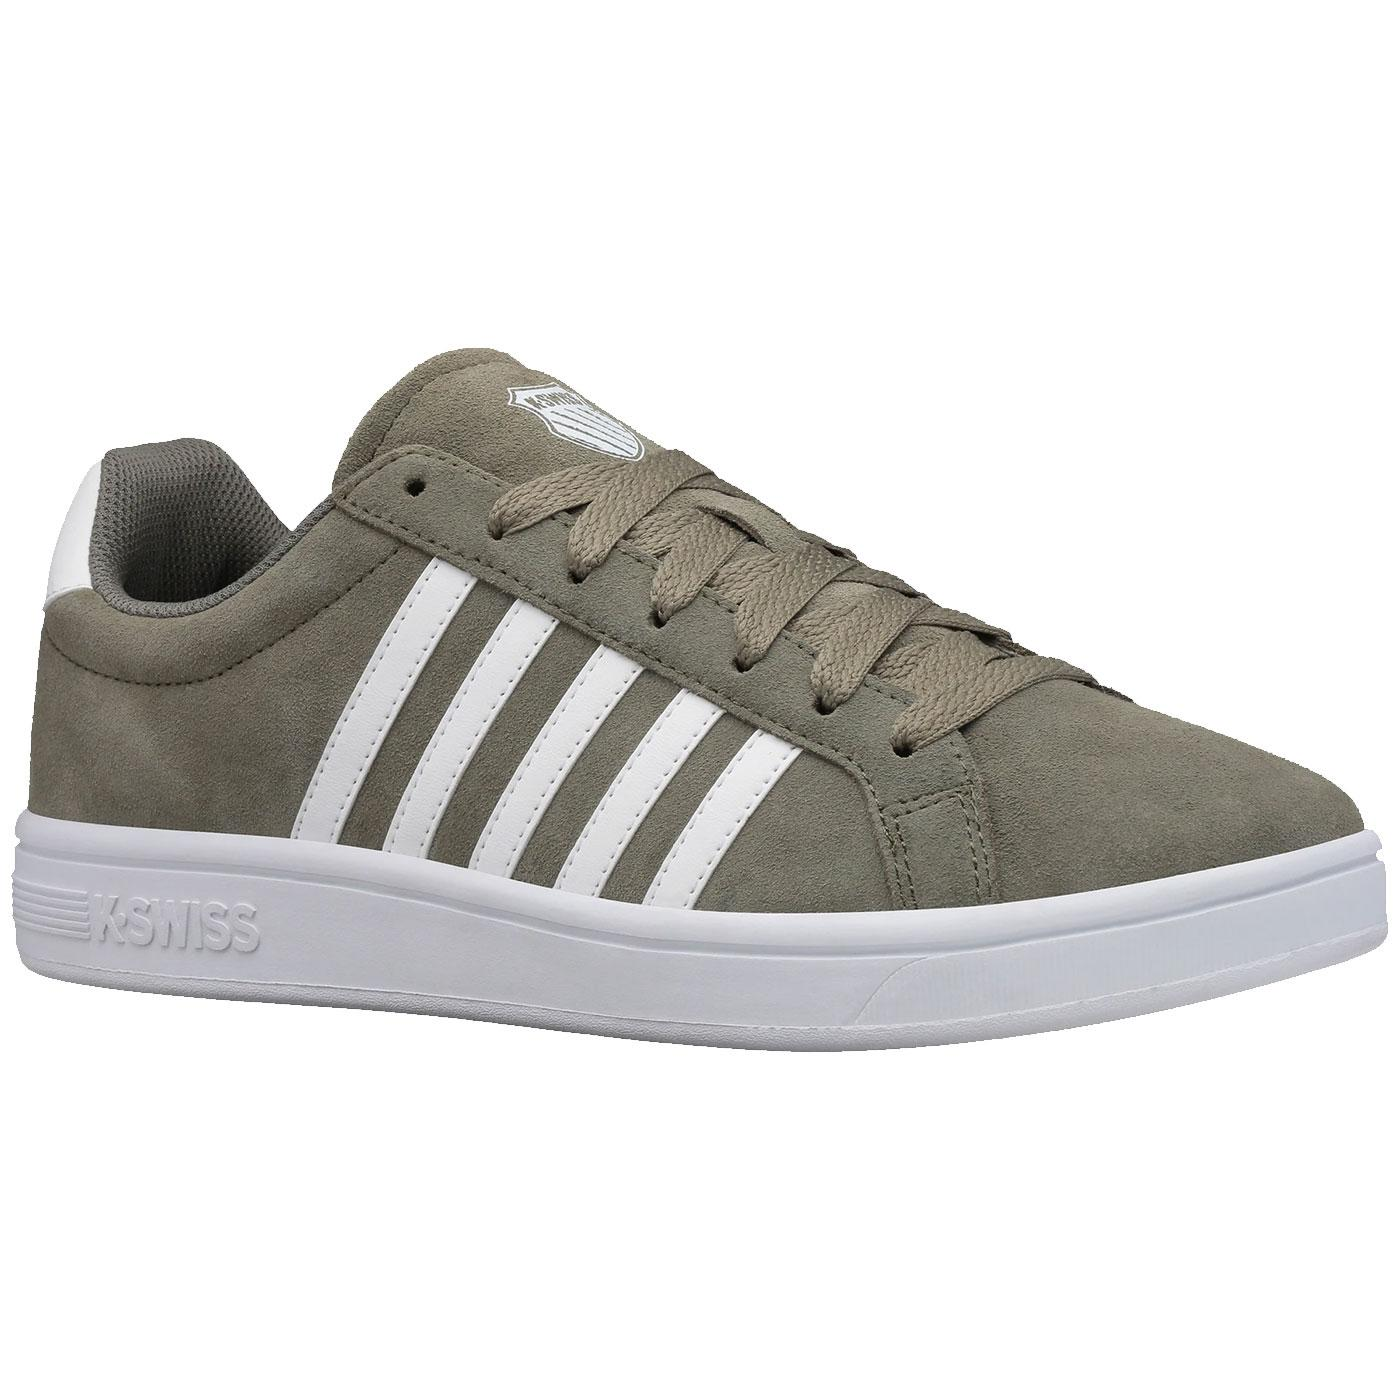 Court Tiebreak K-SWISS Suede Stripe Trainers G/W